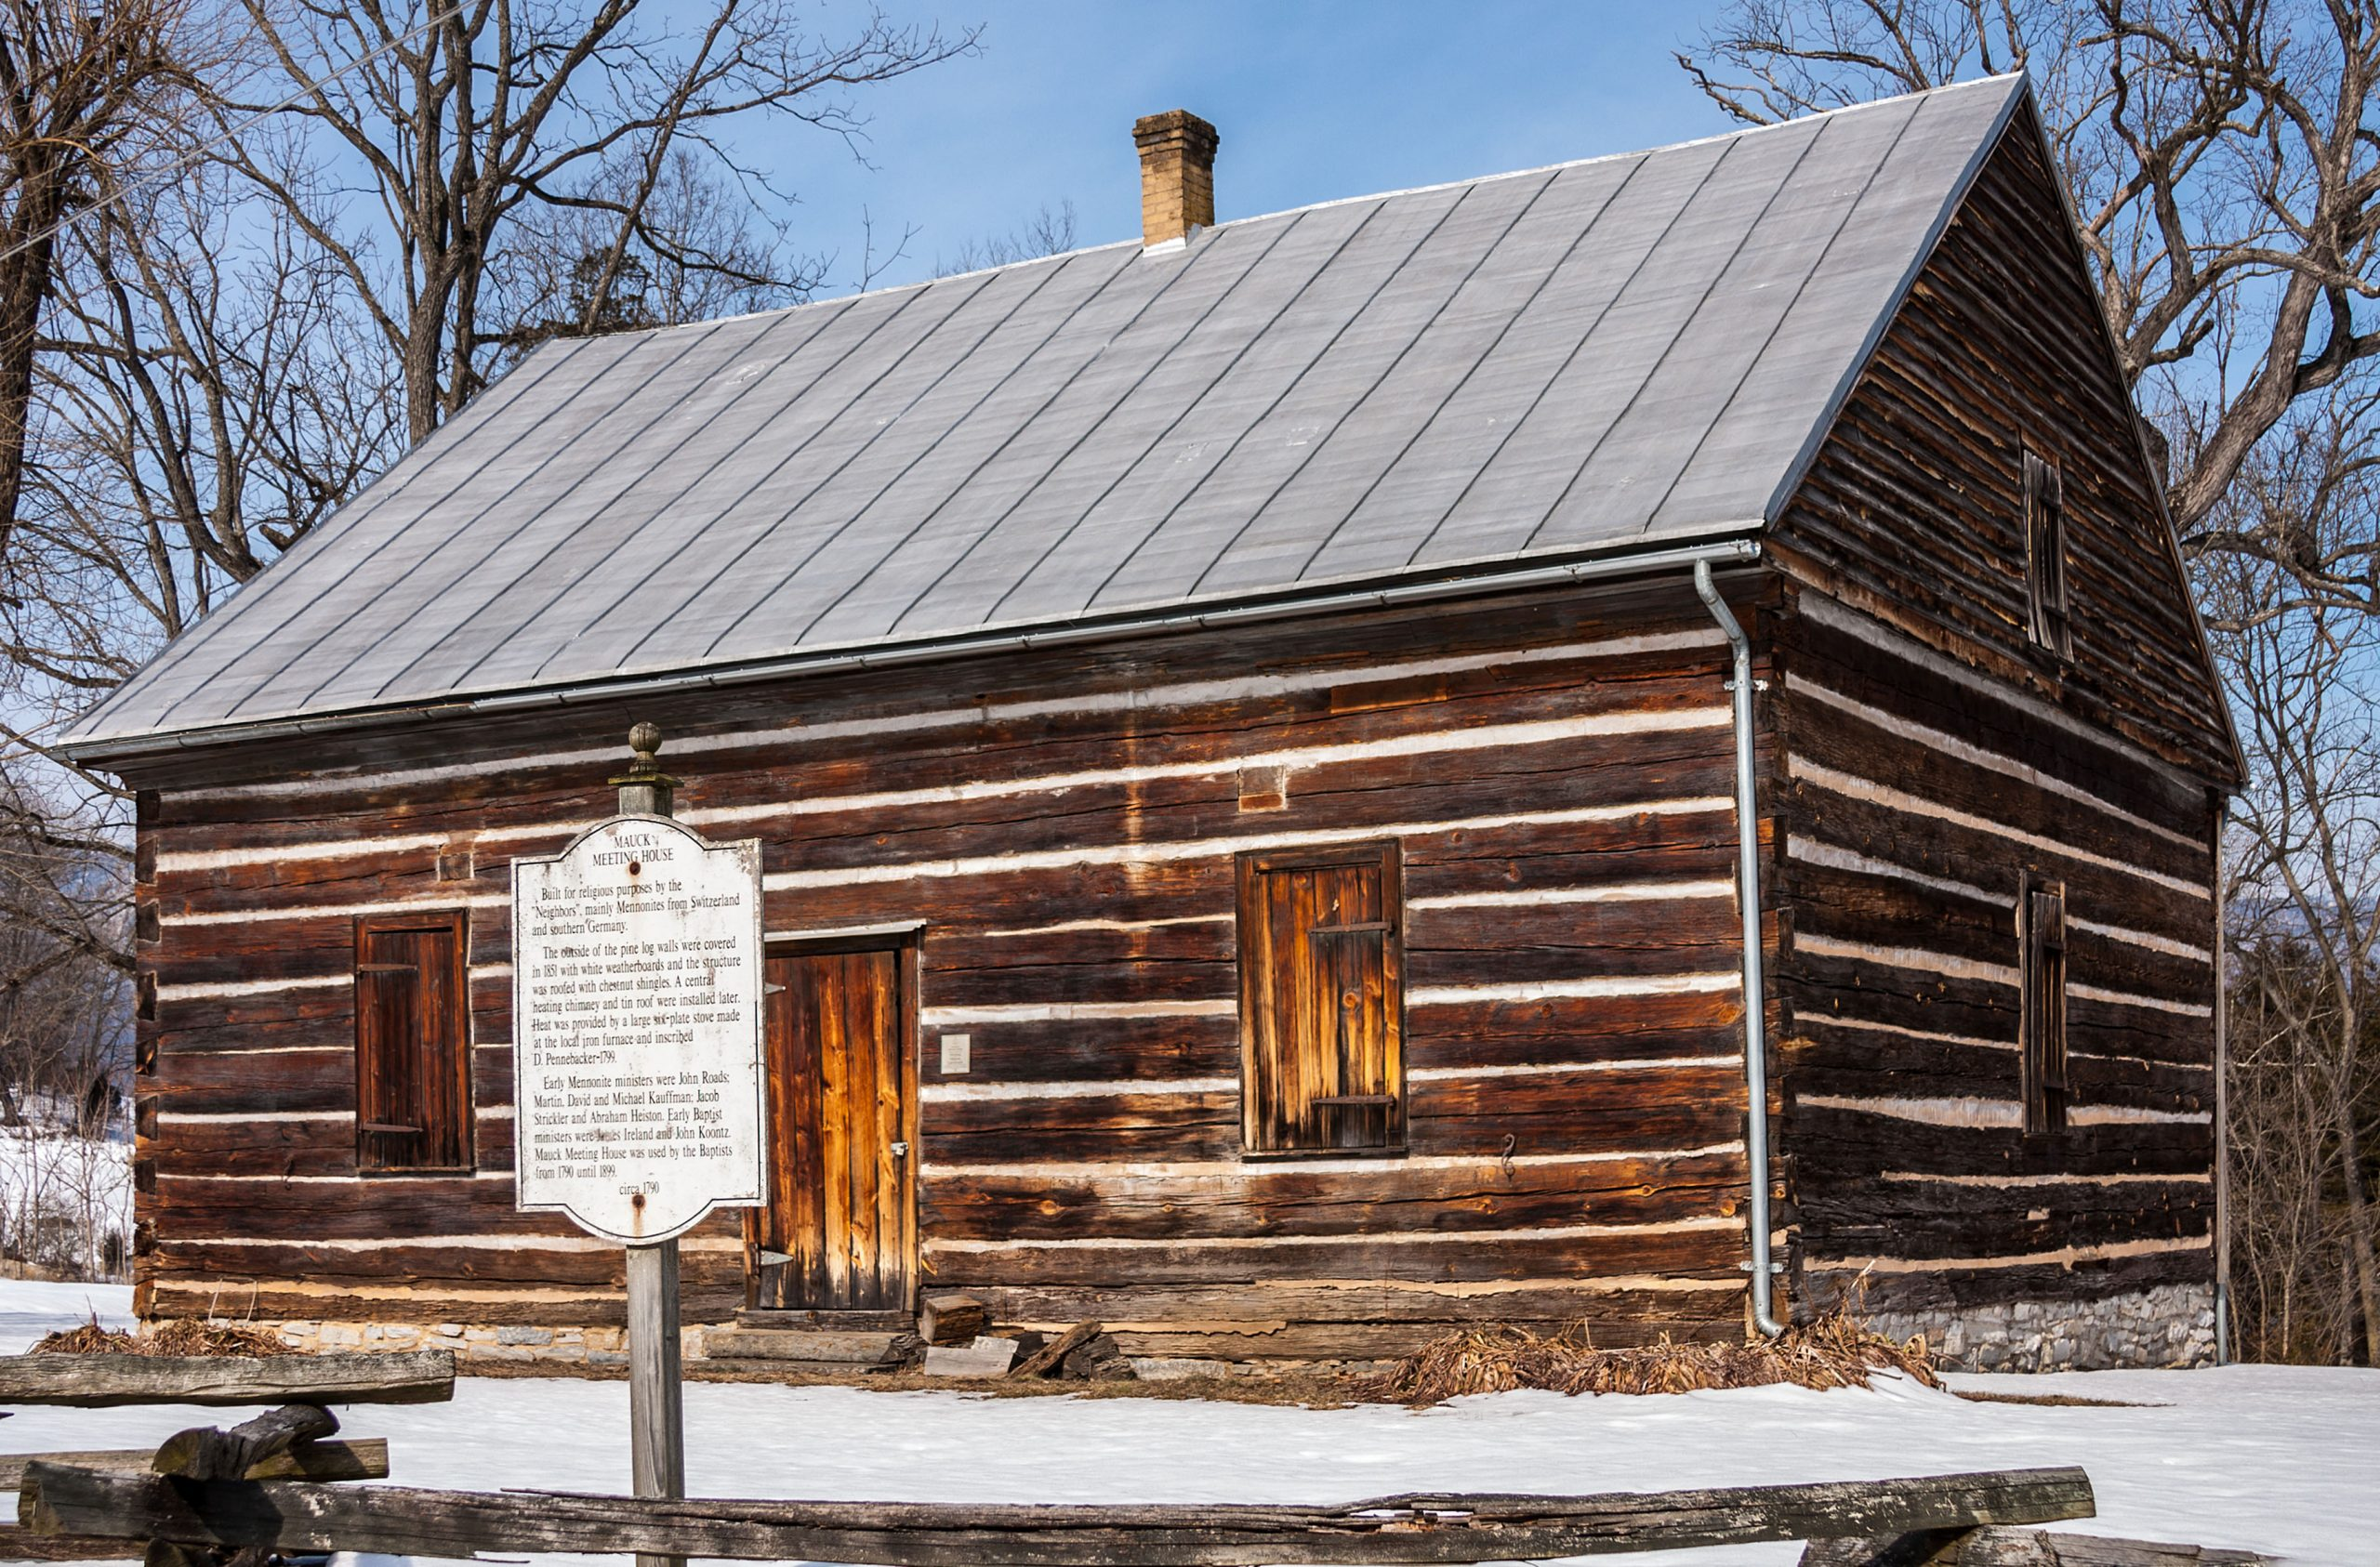 Mauck's Meeting House